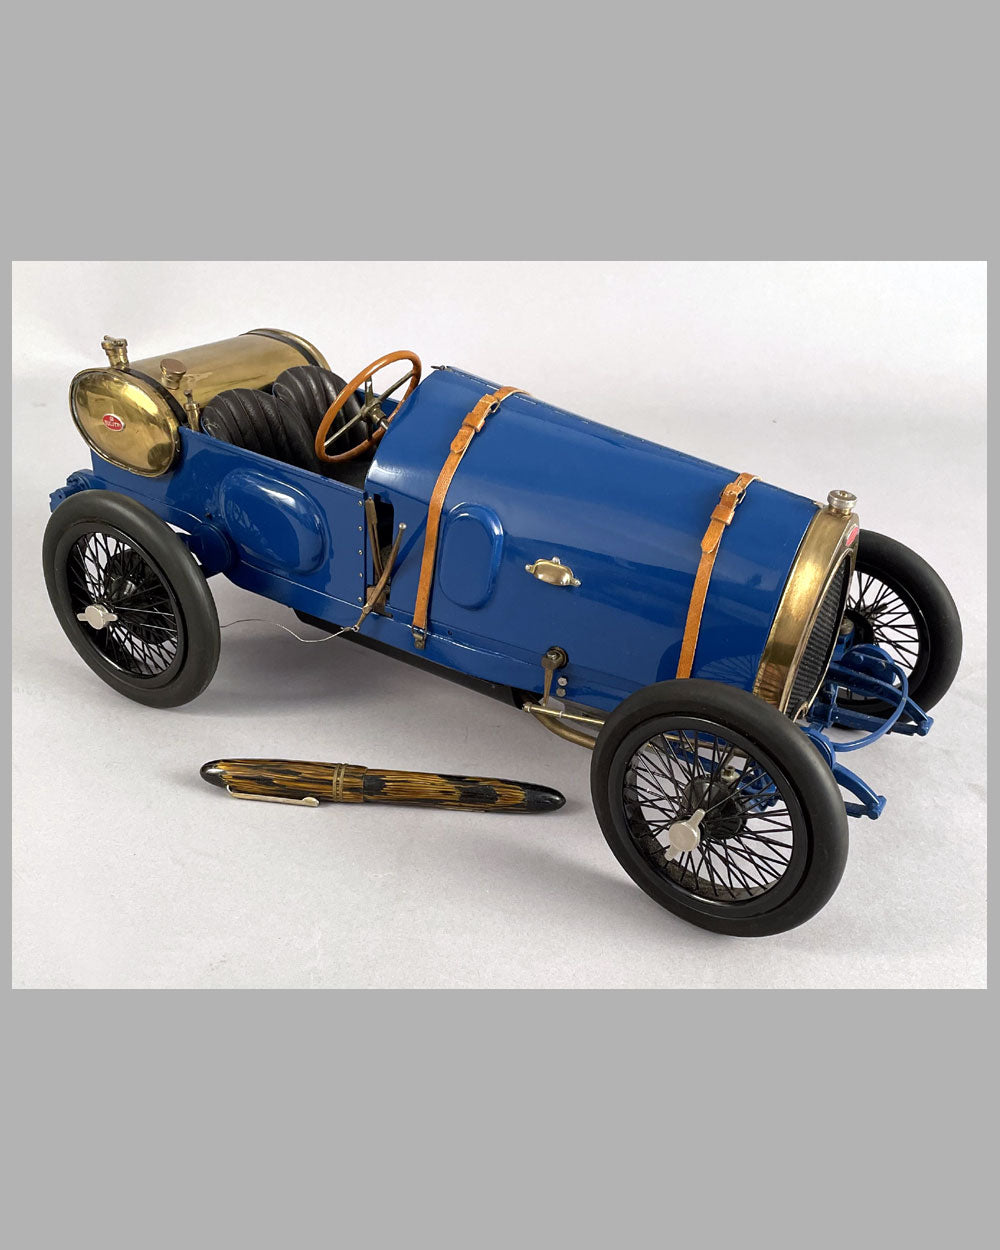 Bugatti Brescia scratch built model by Marc Antonietti and Henri Bossac in the 1980's